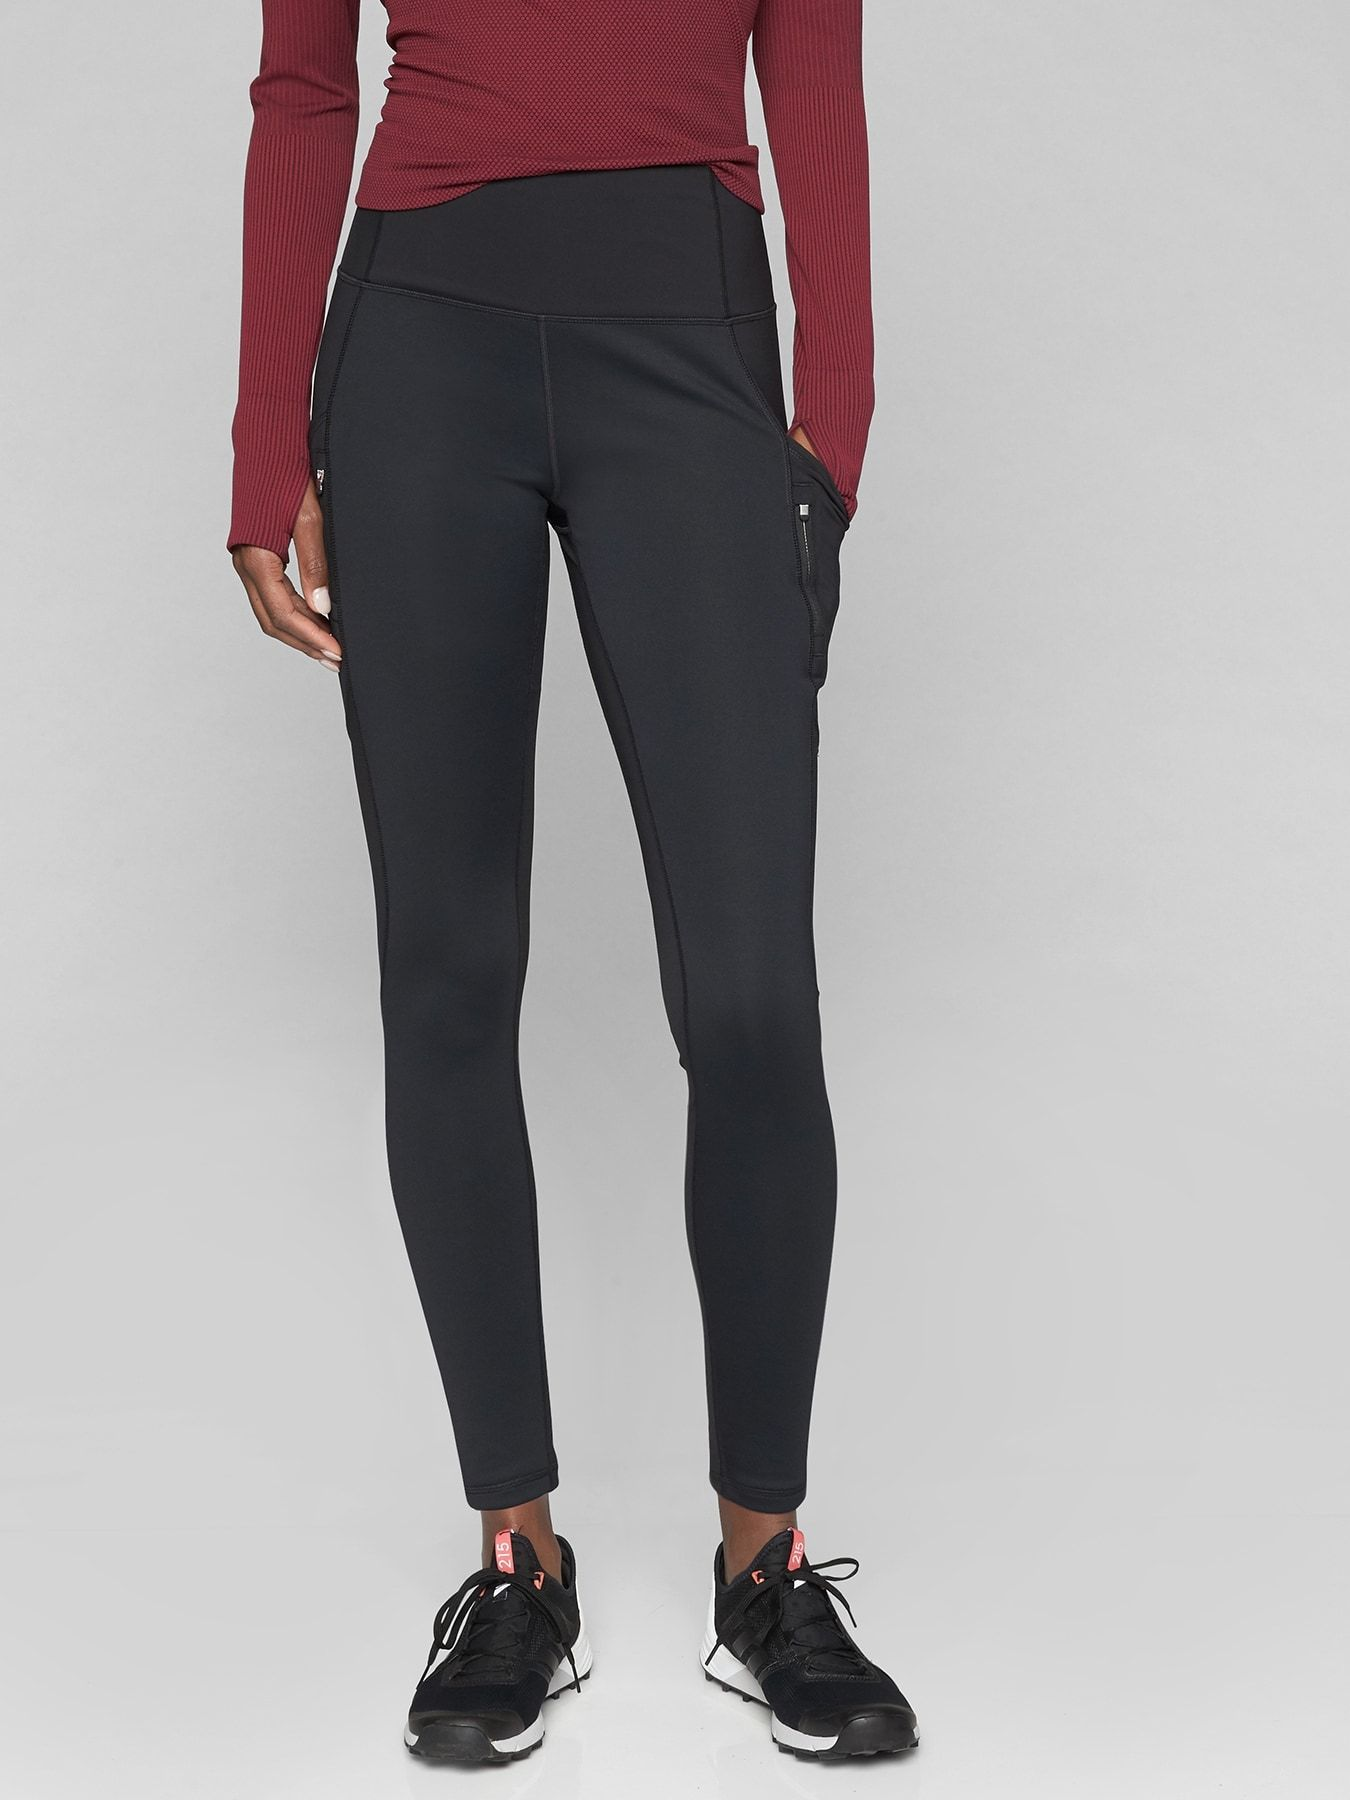 908b5403d0251 Athleta High Traverse Tight Petite small   all i want for christmas ...